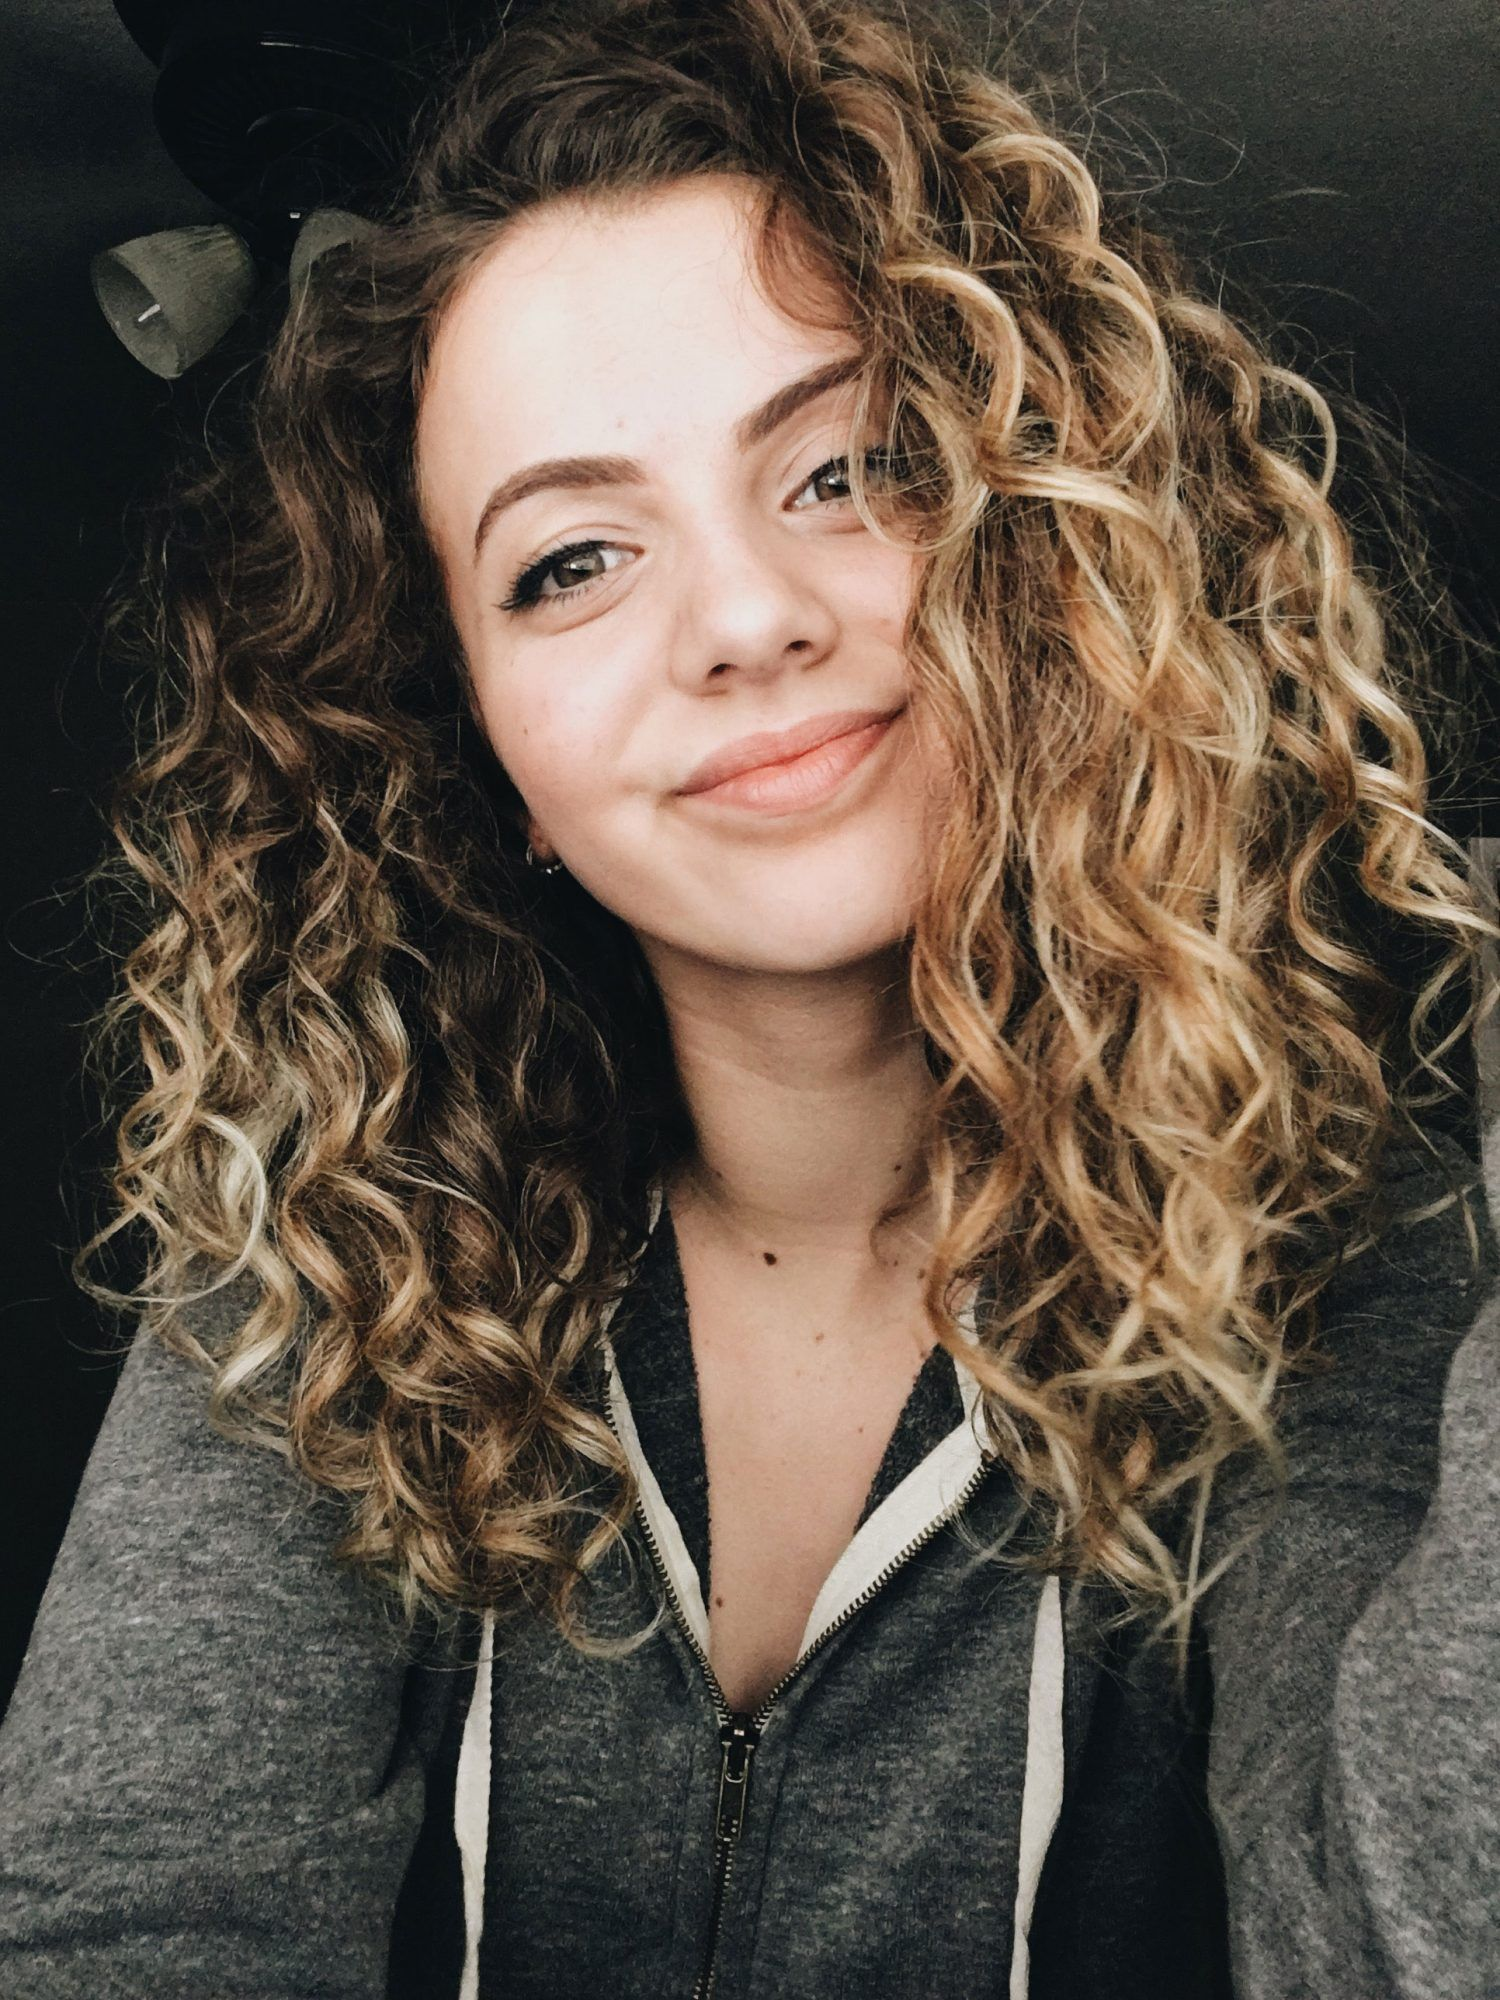 14 Must Try Hairstyles For Long Curly Hair In 2020 Highlights Curly Hair Brown Blonde Hair Brown Hair With Blonde Highlights